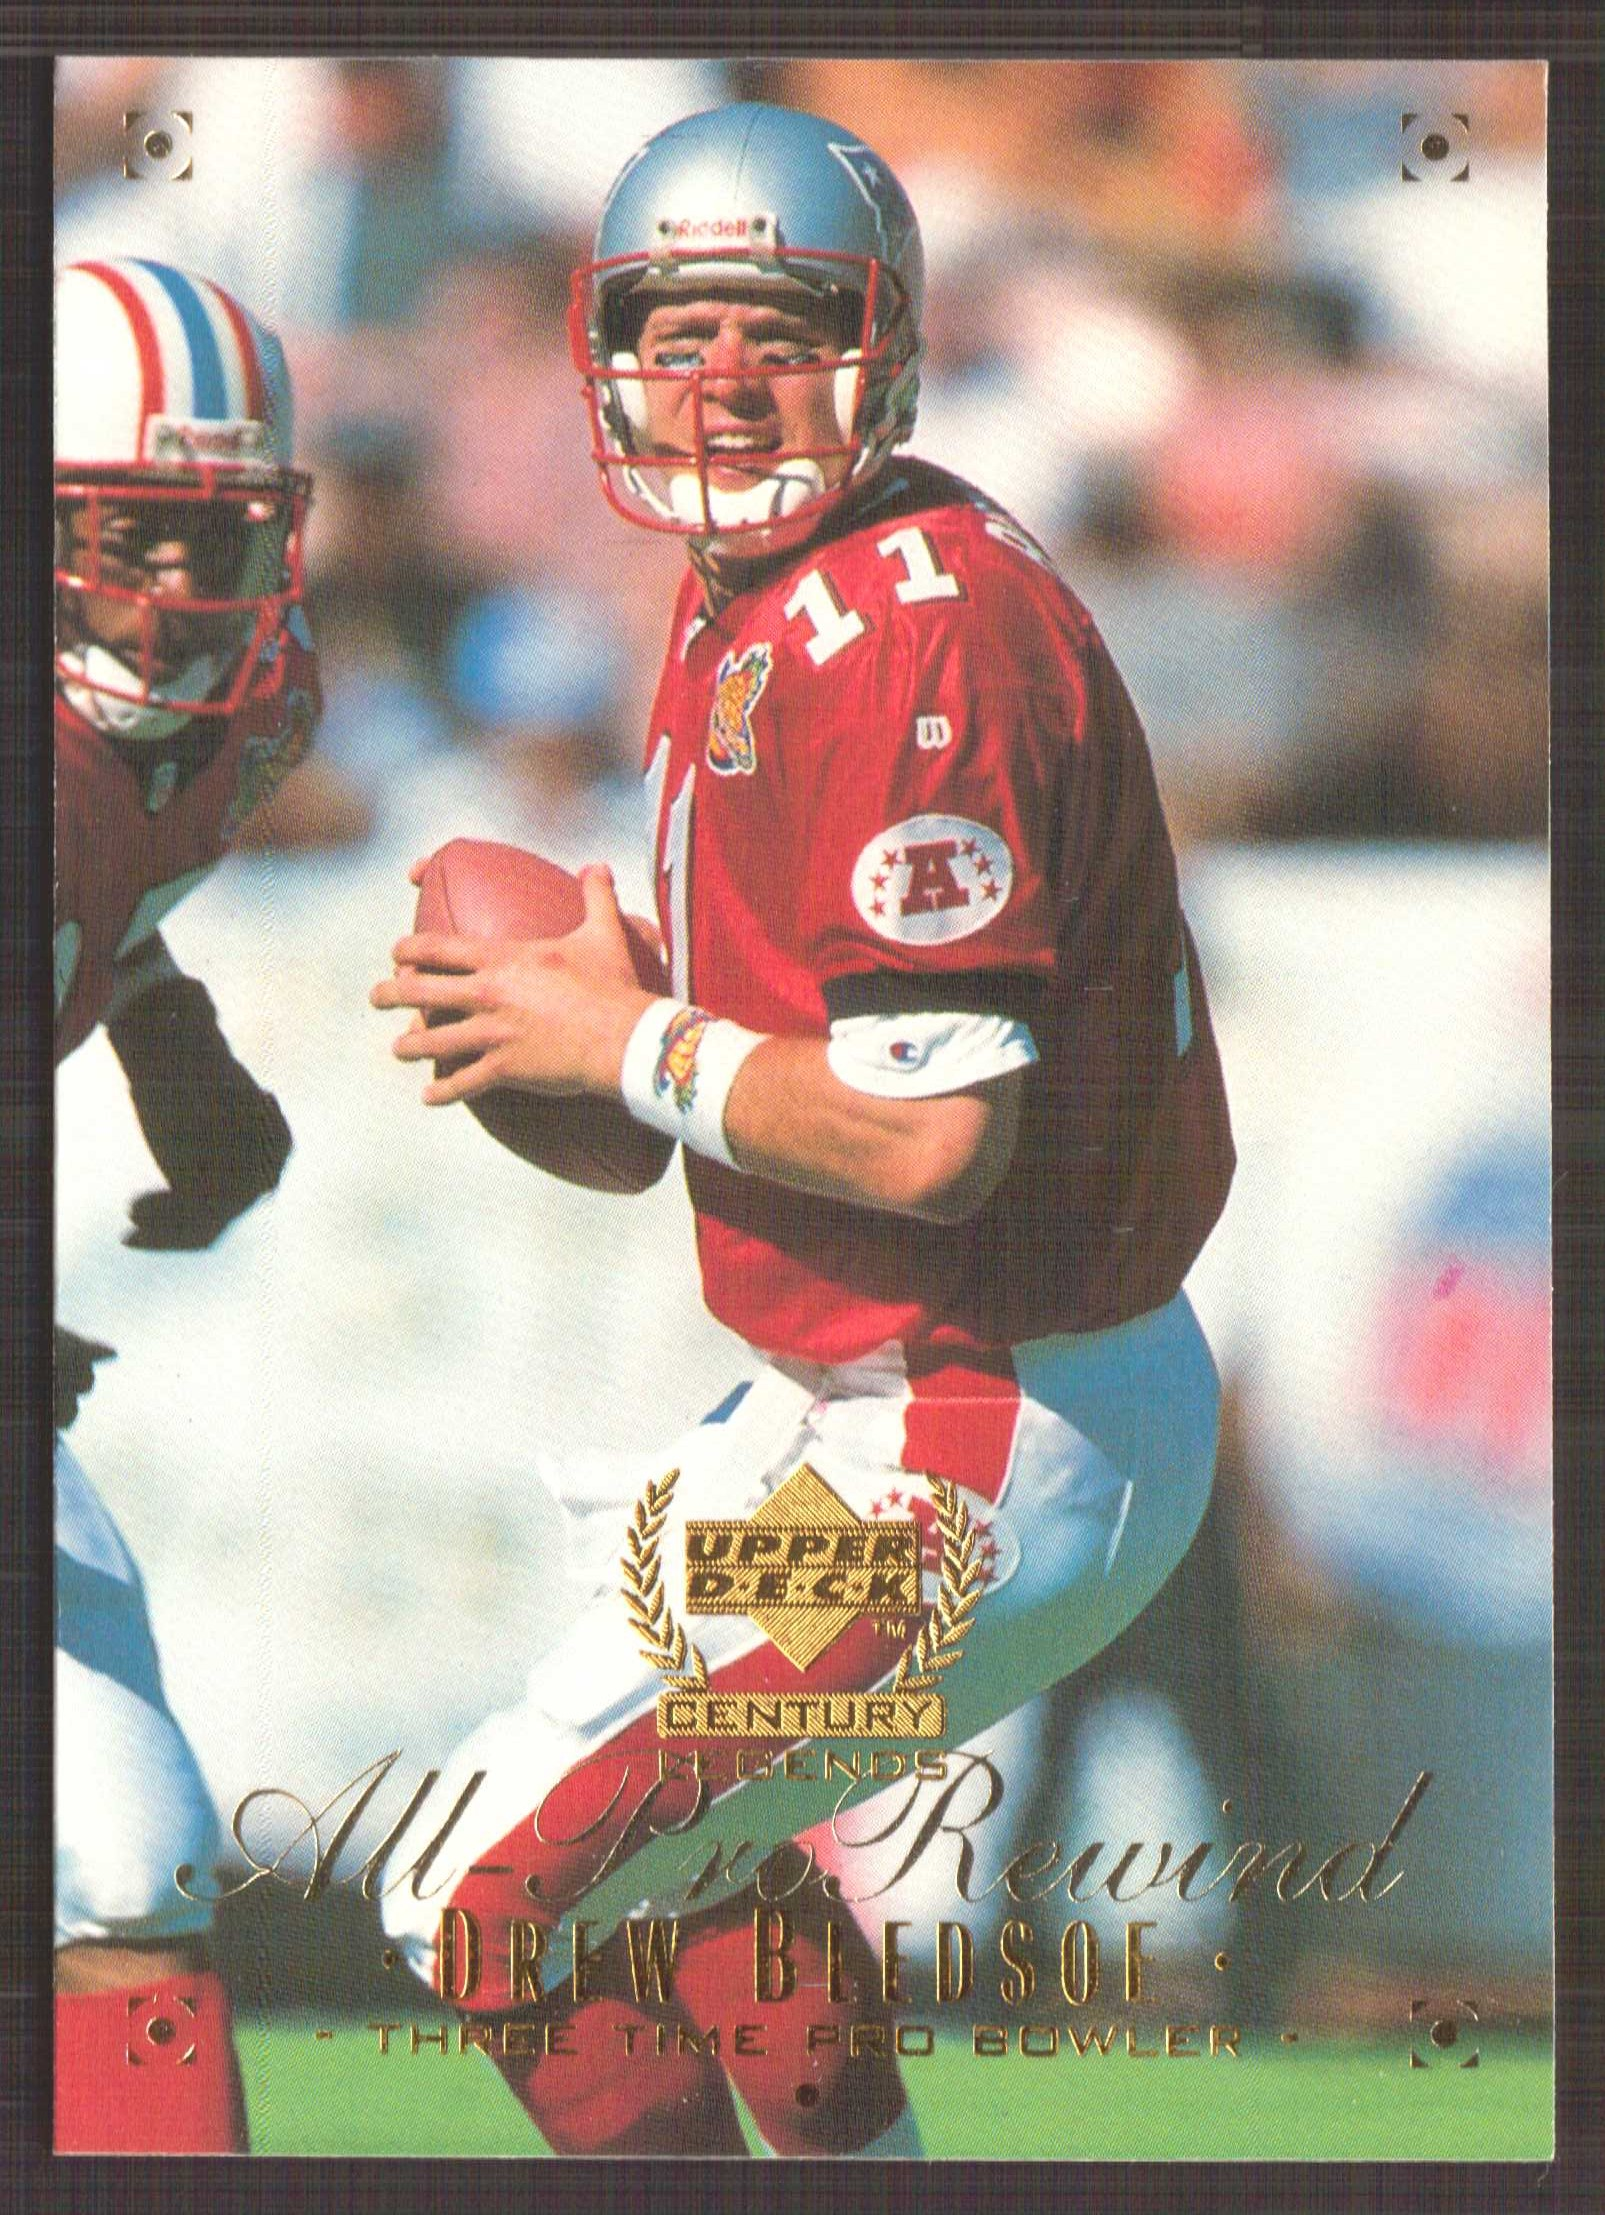 1999 Upper Deck Century Legends #115 Drew Bledsoe APR